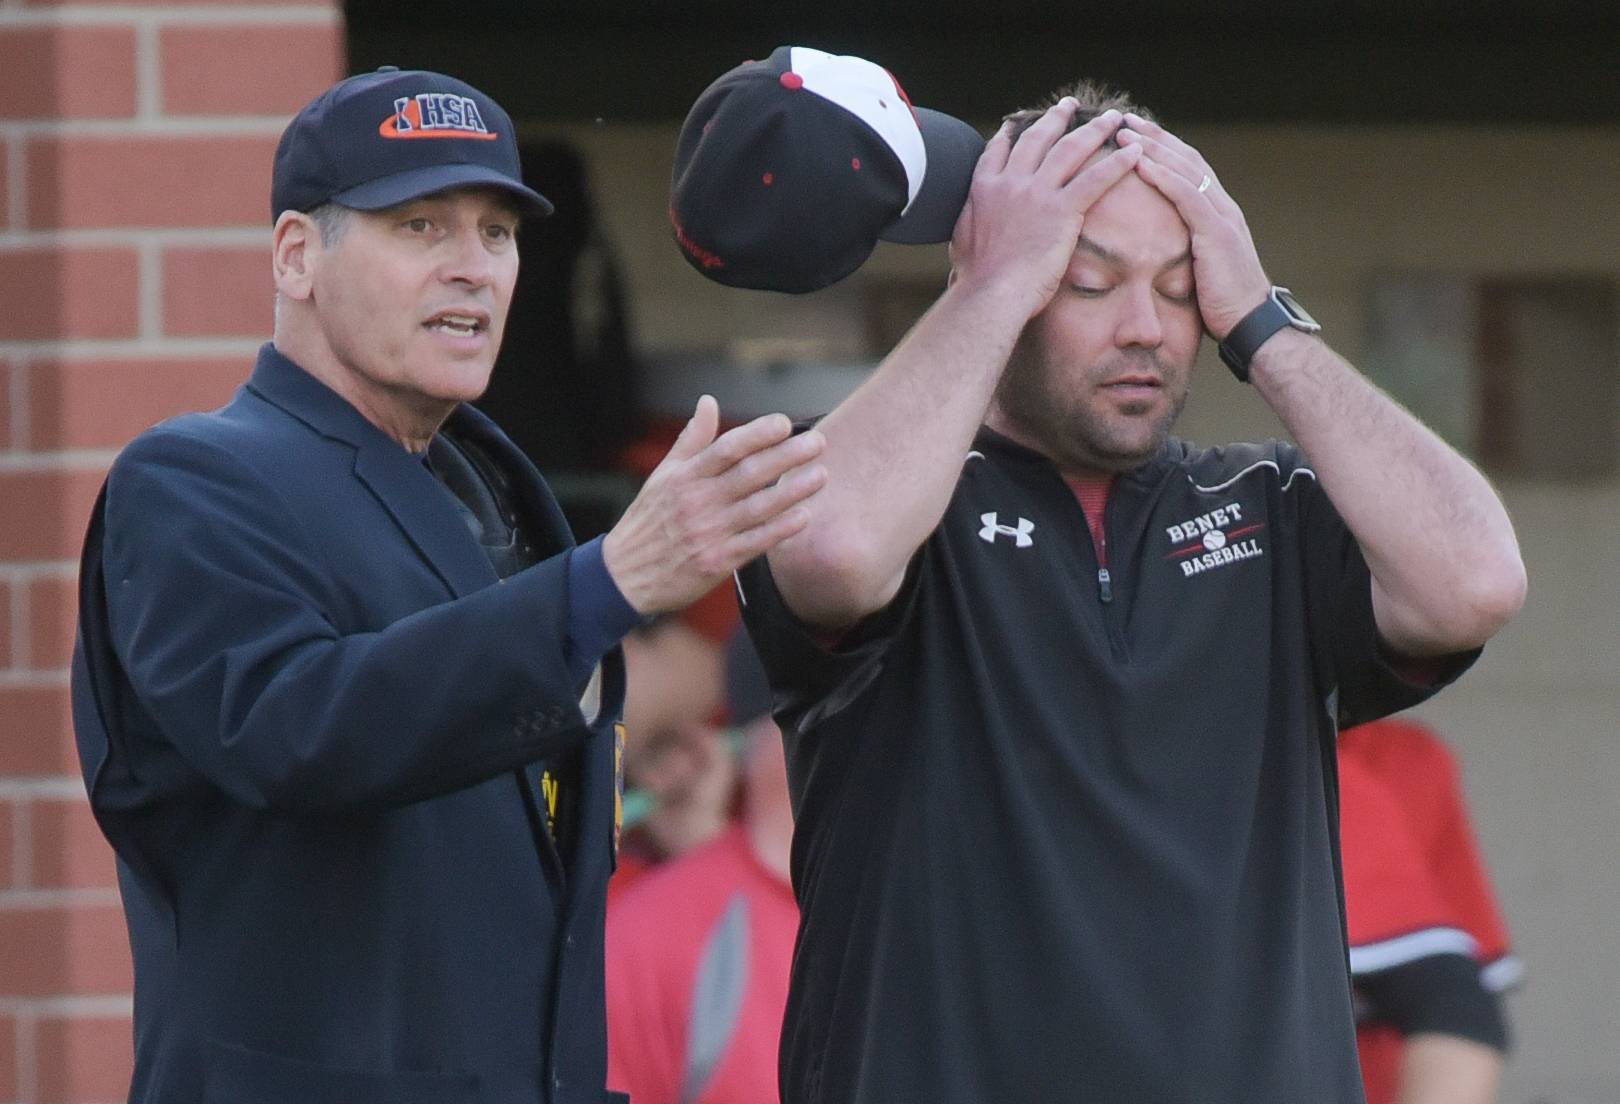 While arguing a call with the home plate umpire, Benet Academy's head coach Scott Lawler reaction sums up the  feelings Benet had toward the officiating during varsity baseball against Nazareth in Lisle, April 18, 2017.  The game ended in a 10-10 tie.